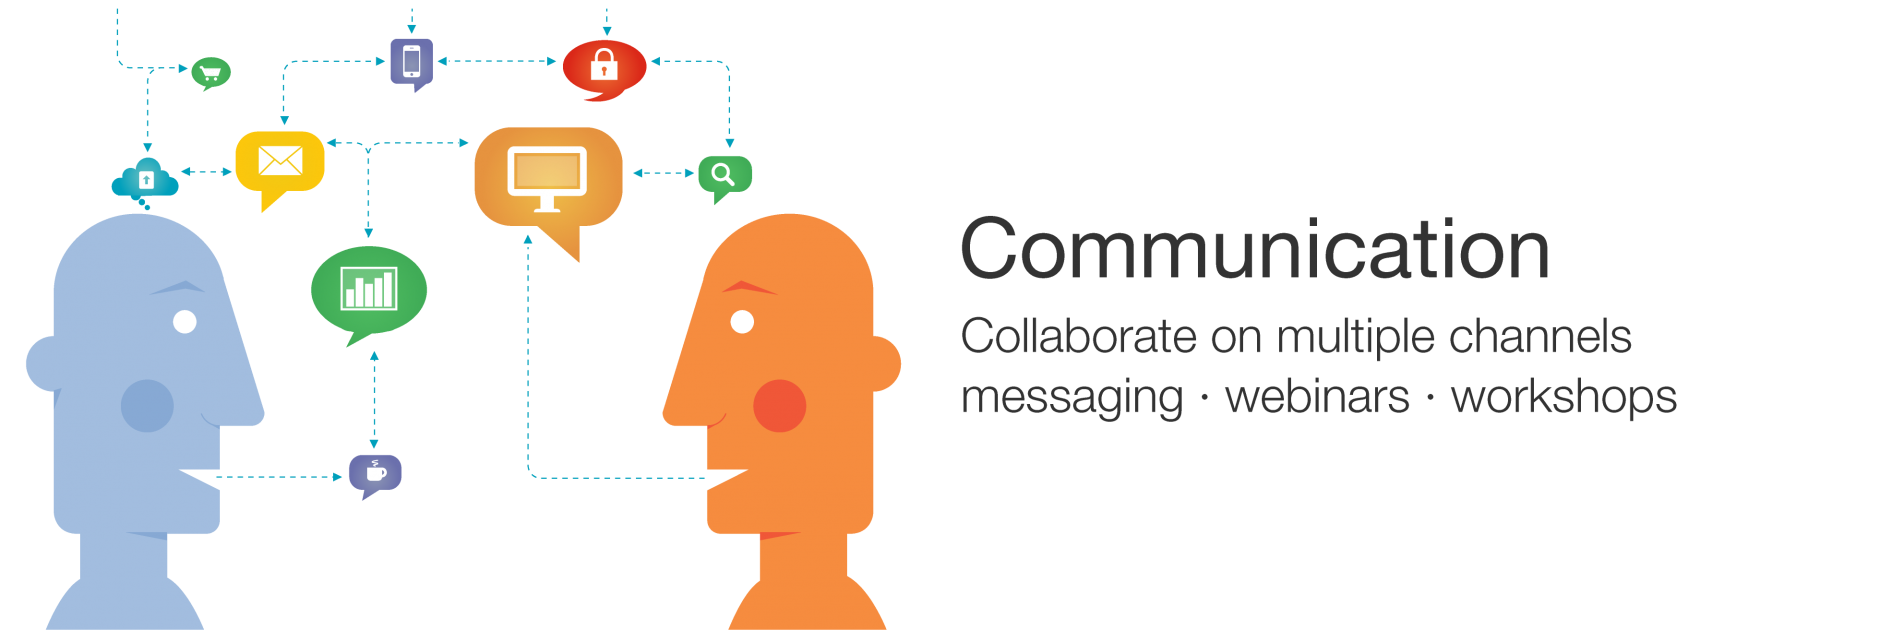 Communication clipart communication channel. With pictures group fivepaths